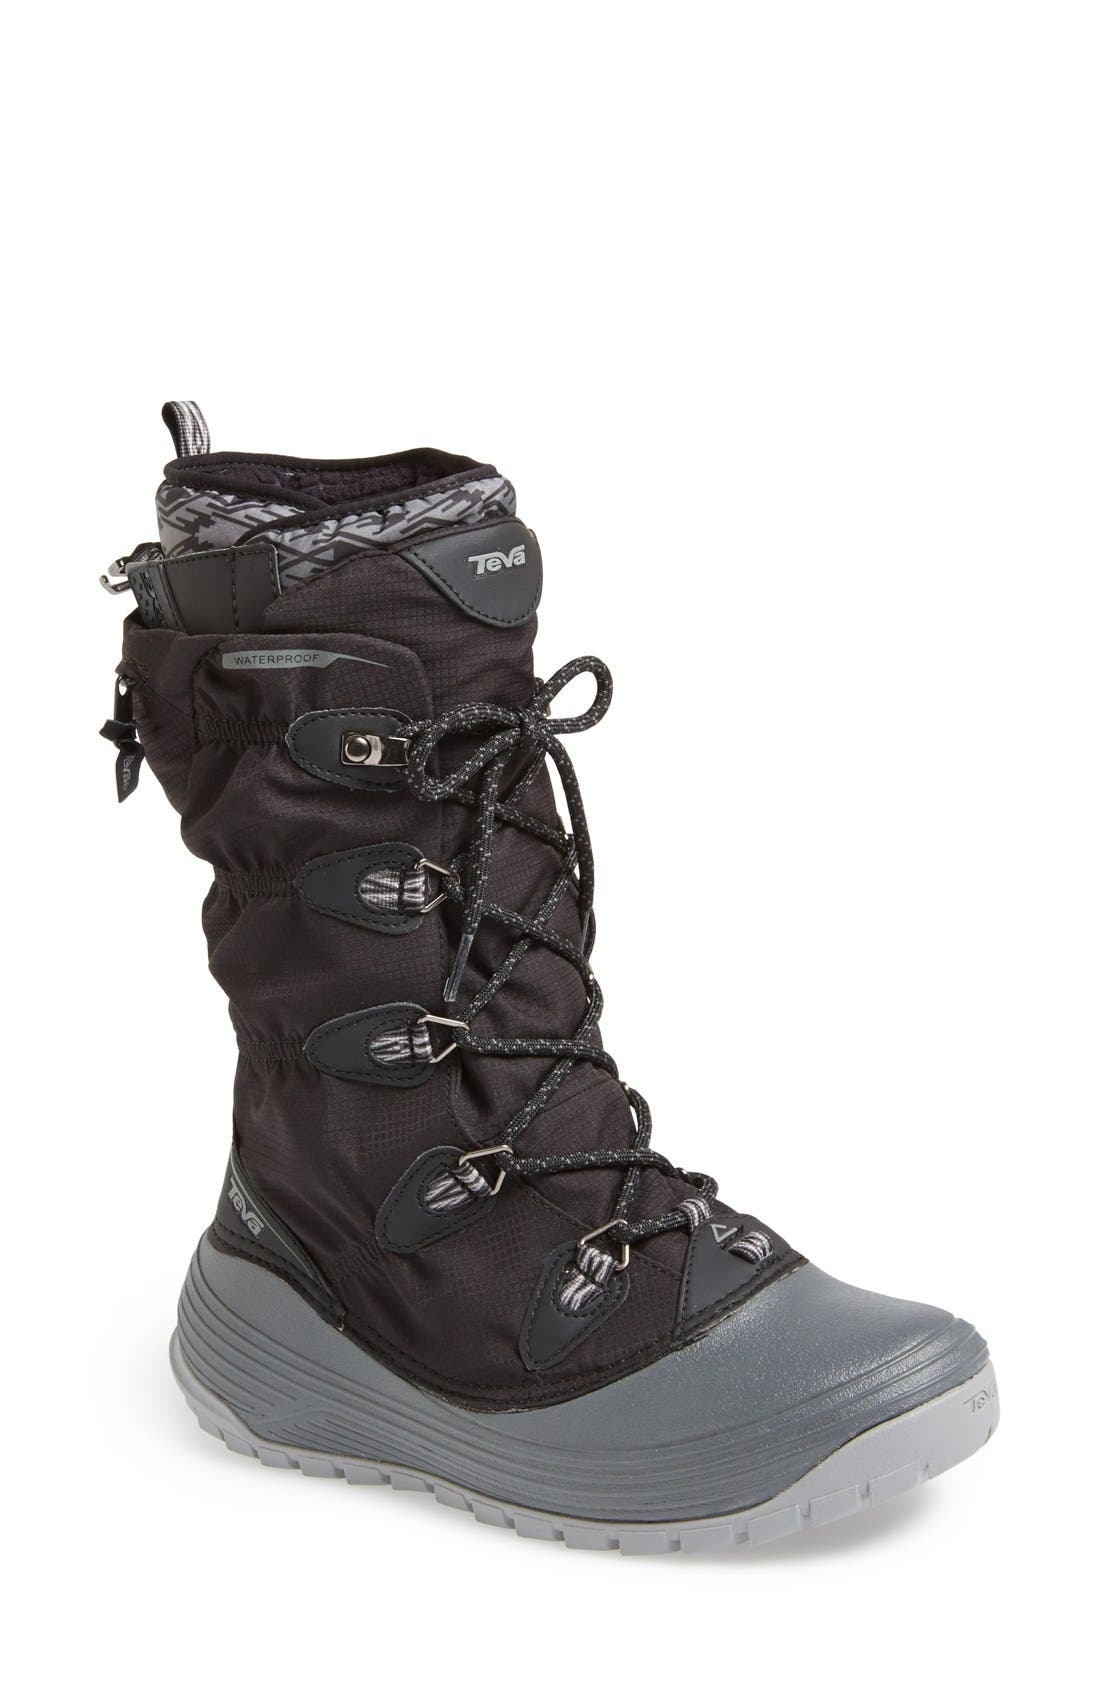 Alternate Image 1 Selected - Teva 'Jordanelle' Boot (Women)